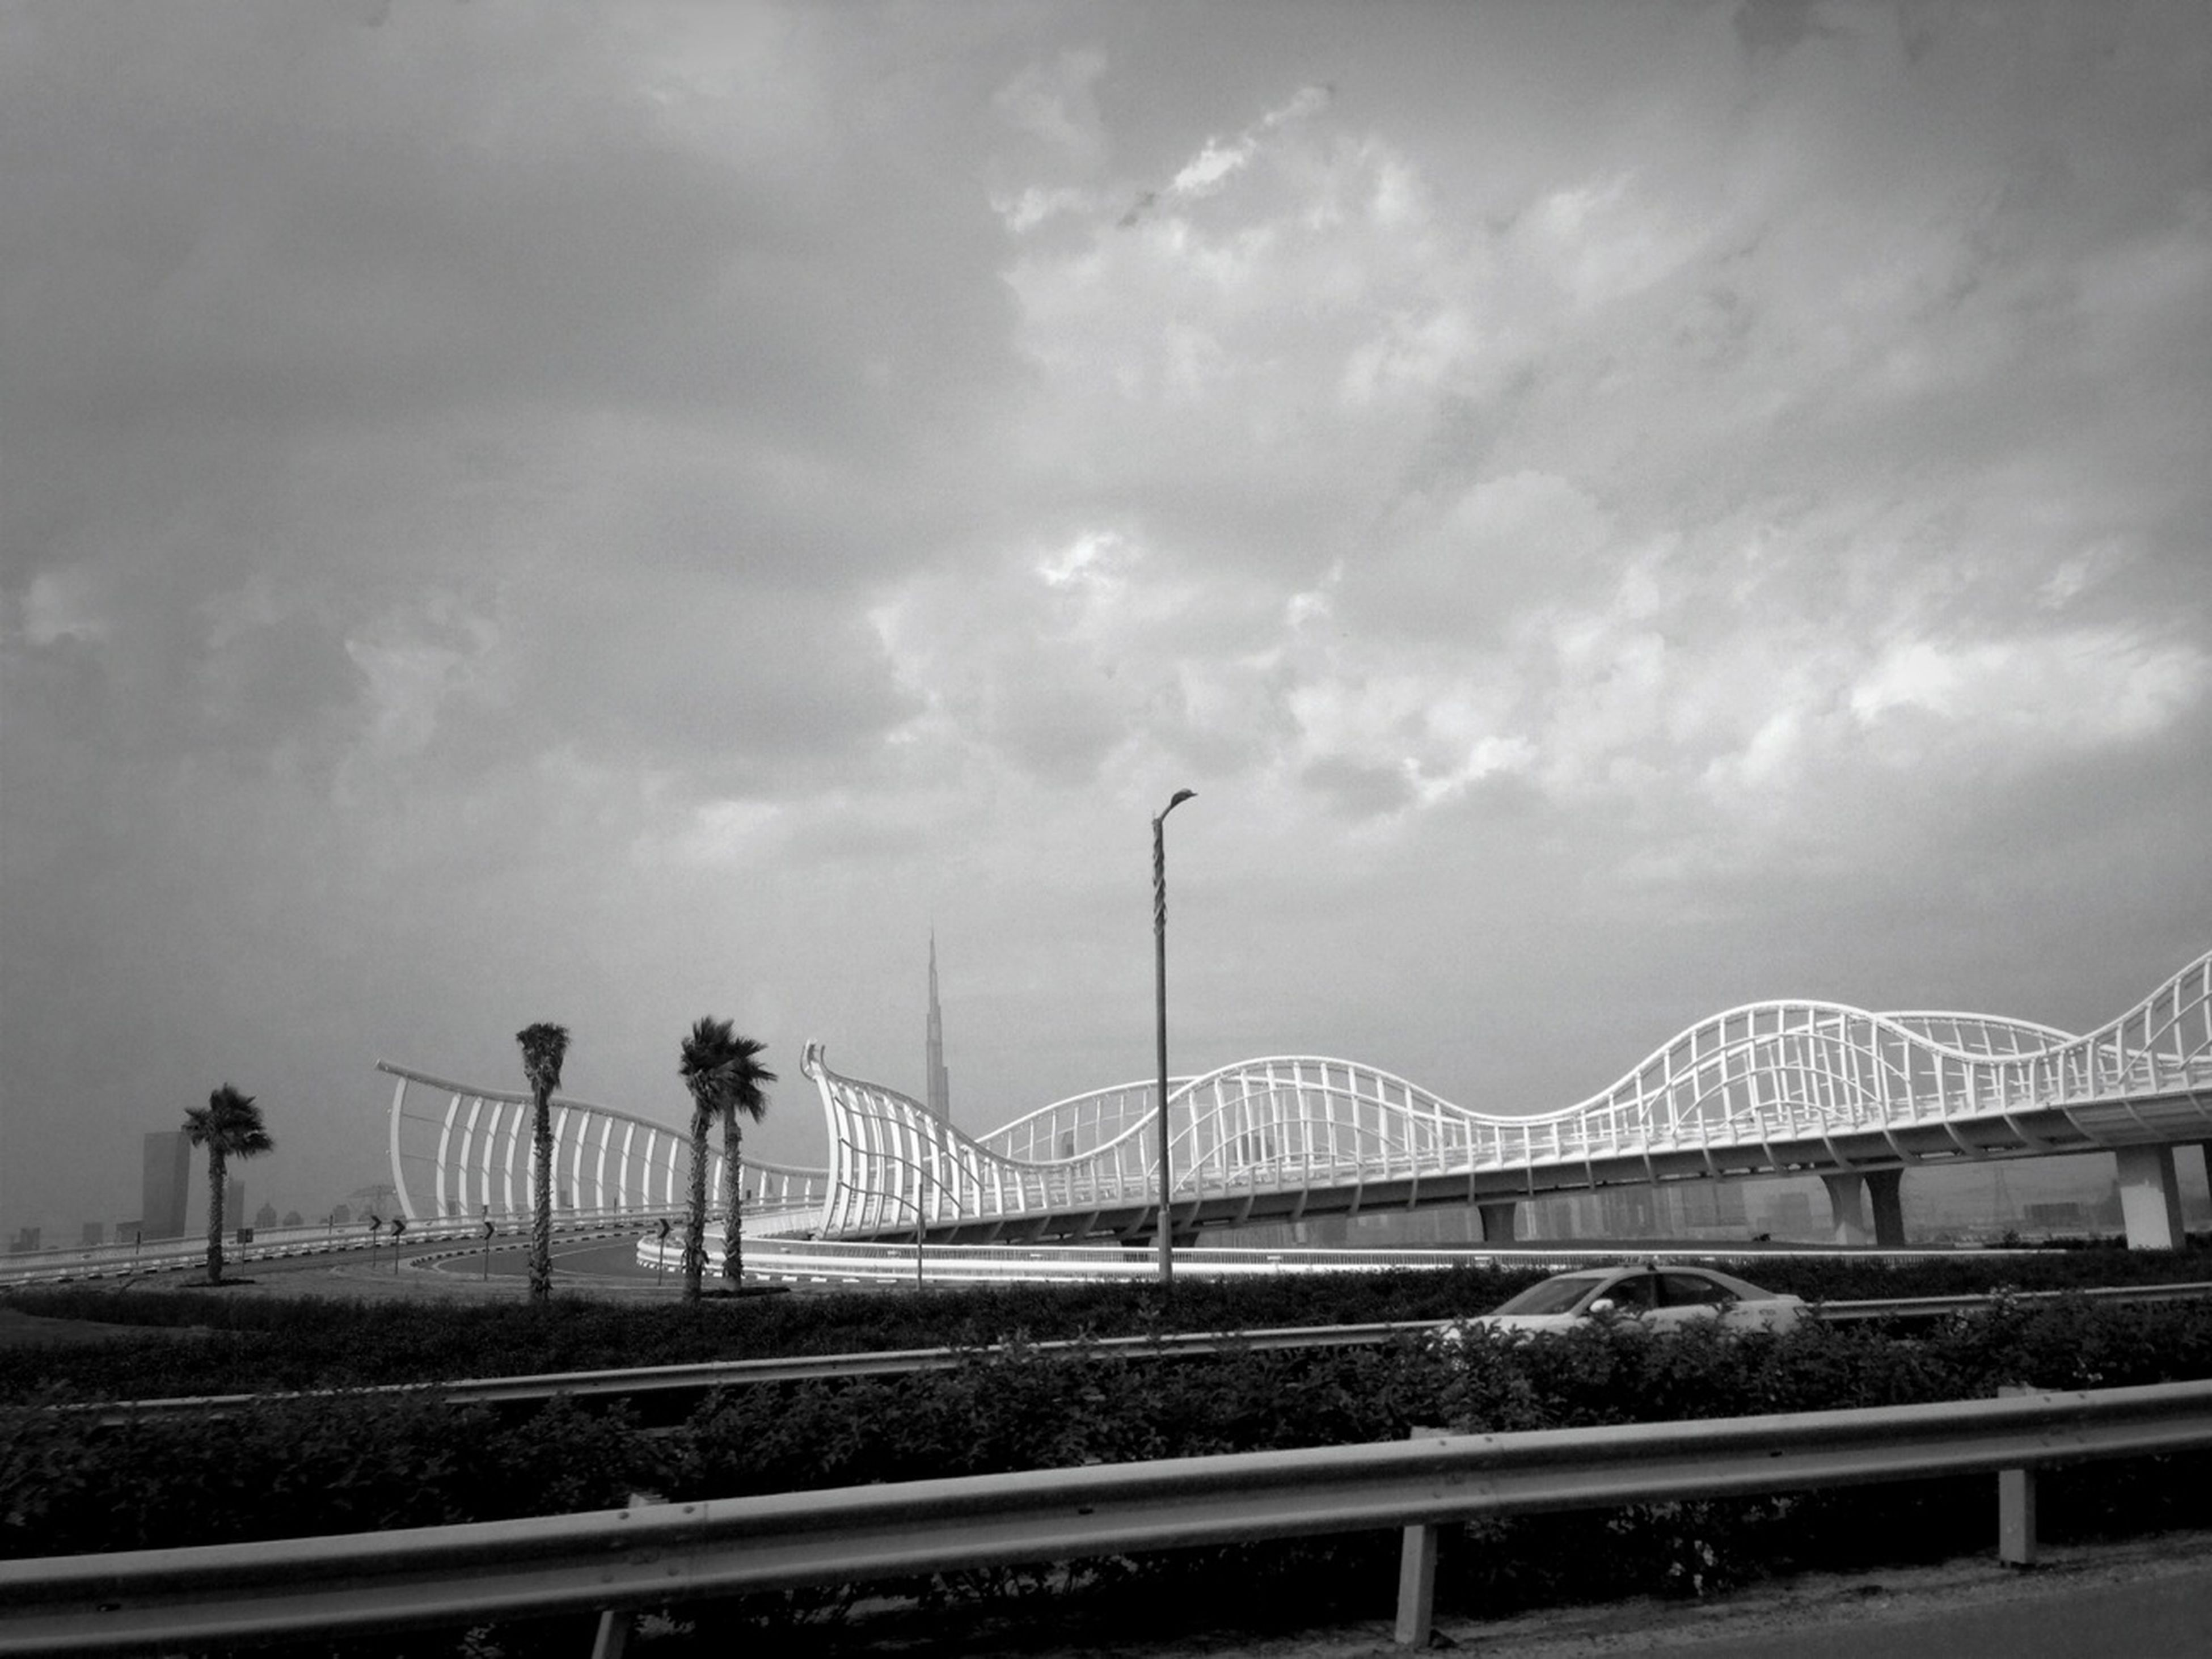 sky, cloud - sky, railing, built structure, architecture, connection, transportation, bridge - man made structure, cloudy, street light, cloud, road, building exterior, bridge, engineering, city, the way forward, overcast, outdoors, day